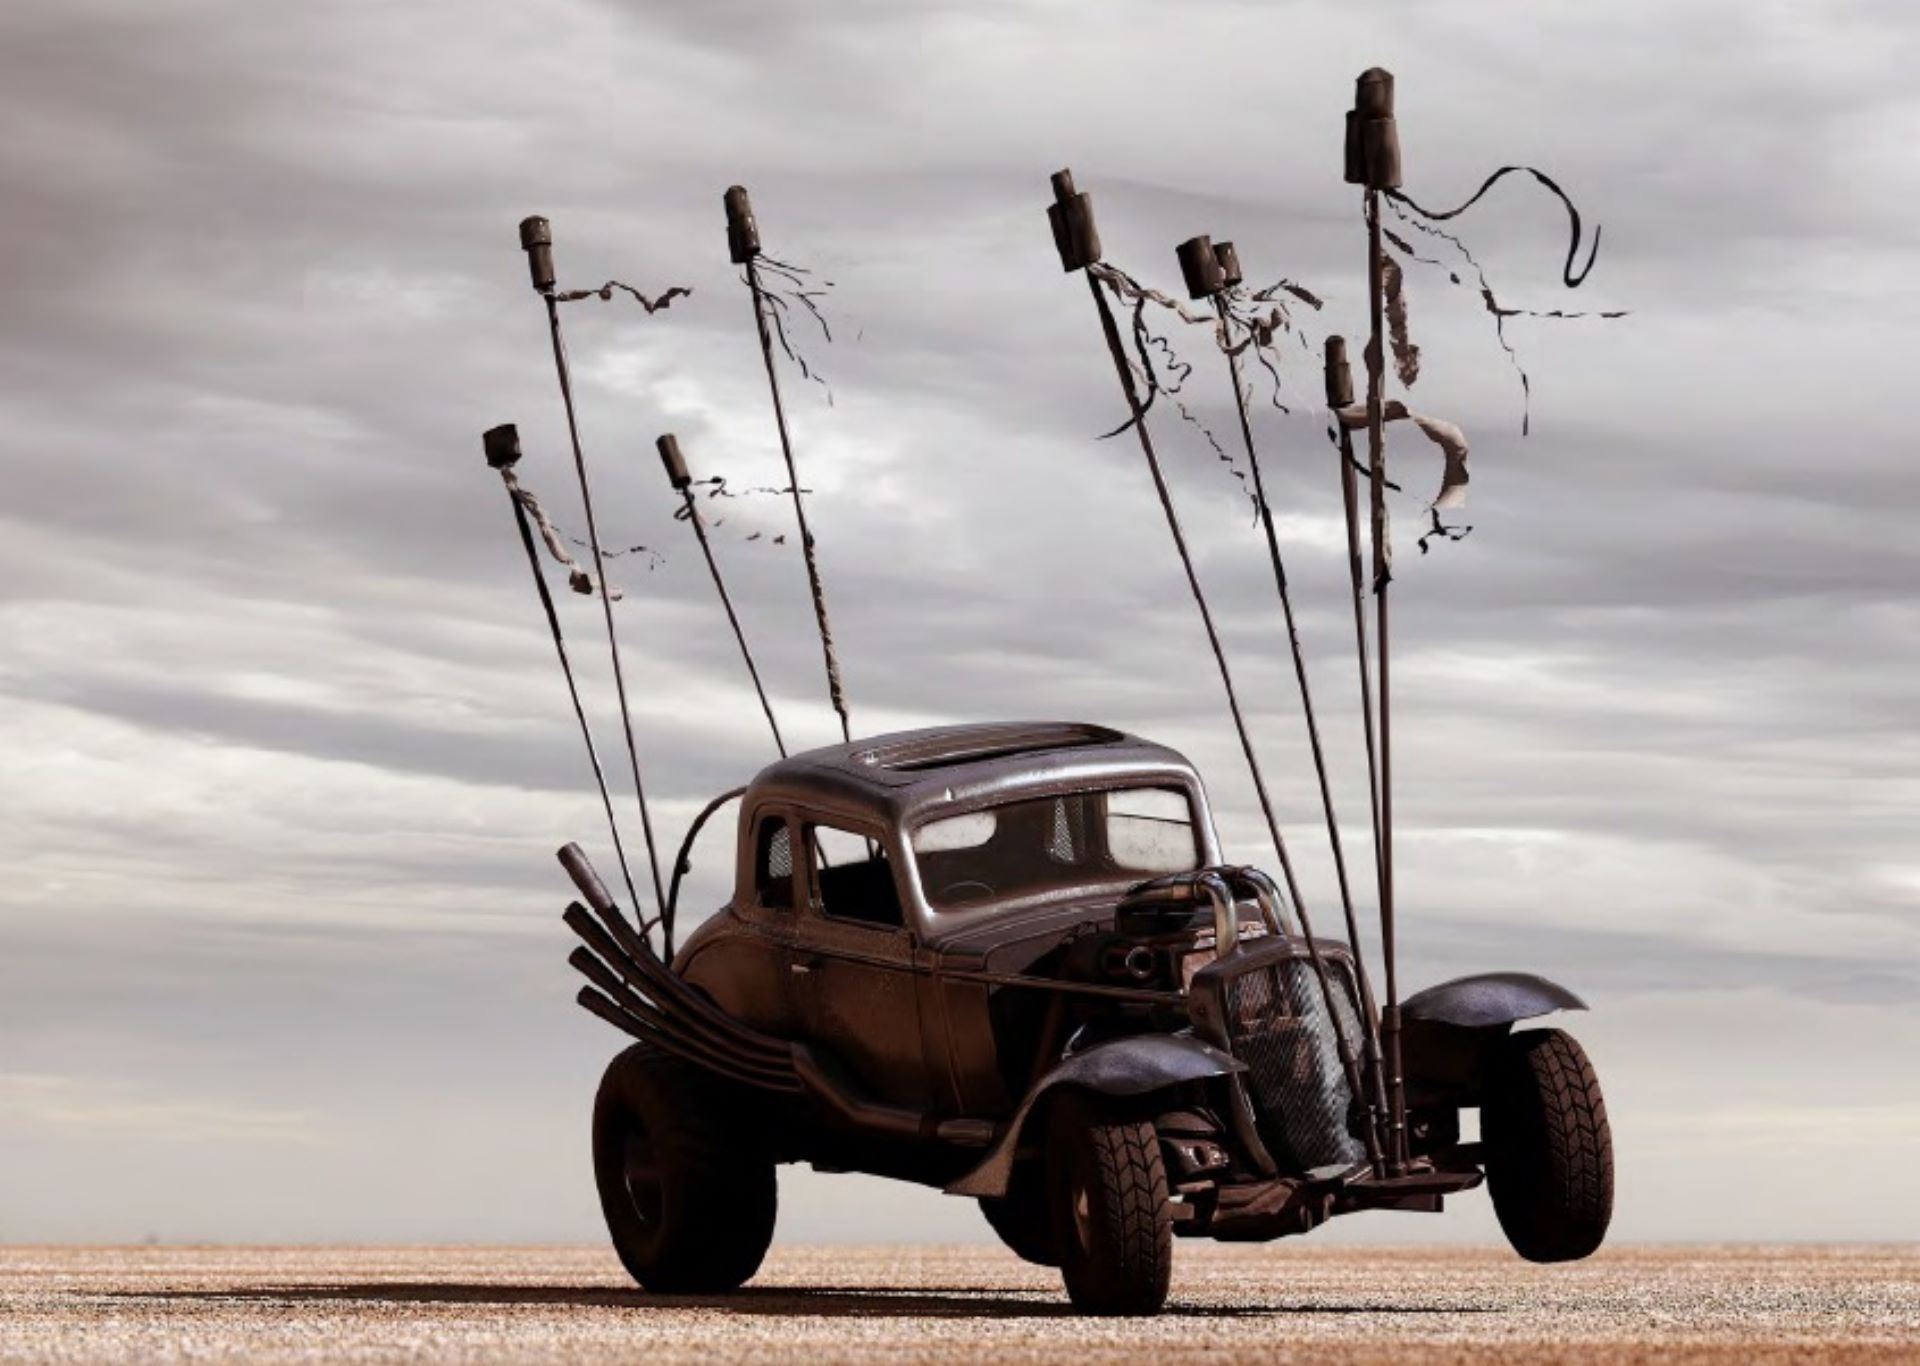 Mad-Max-Fury-Road-cars-for-sale-11